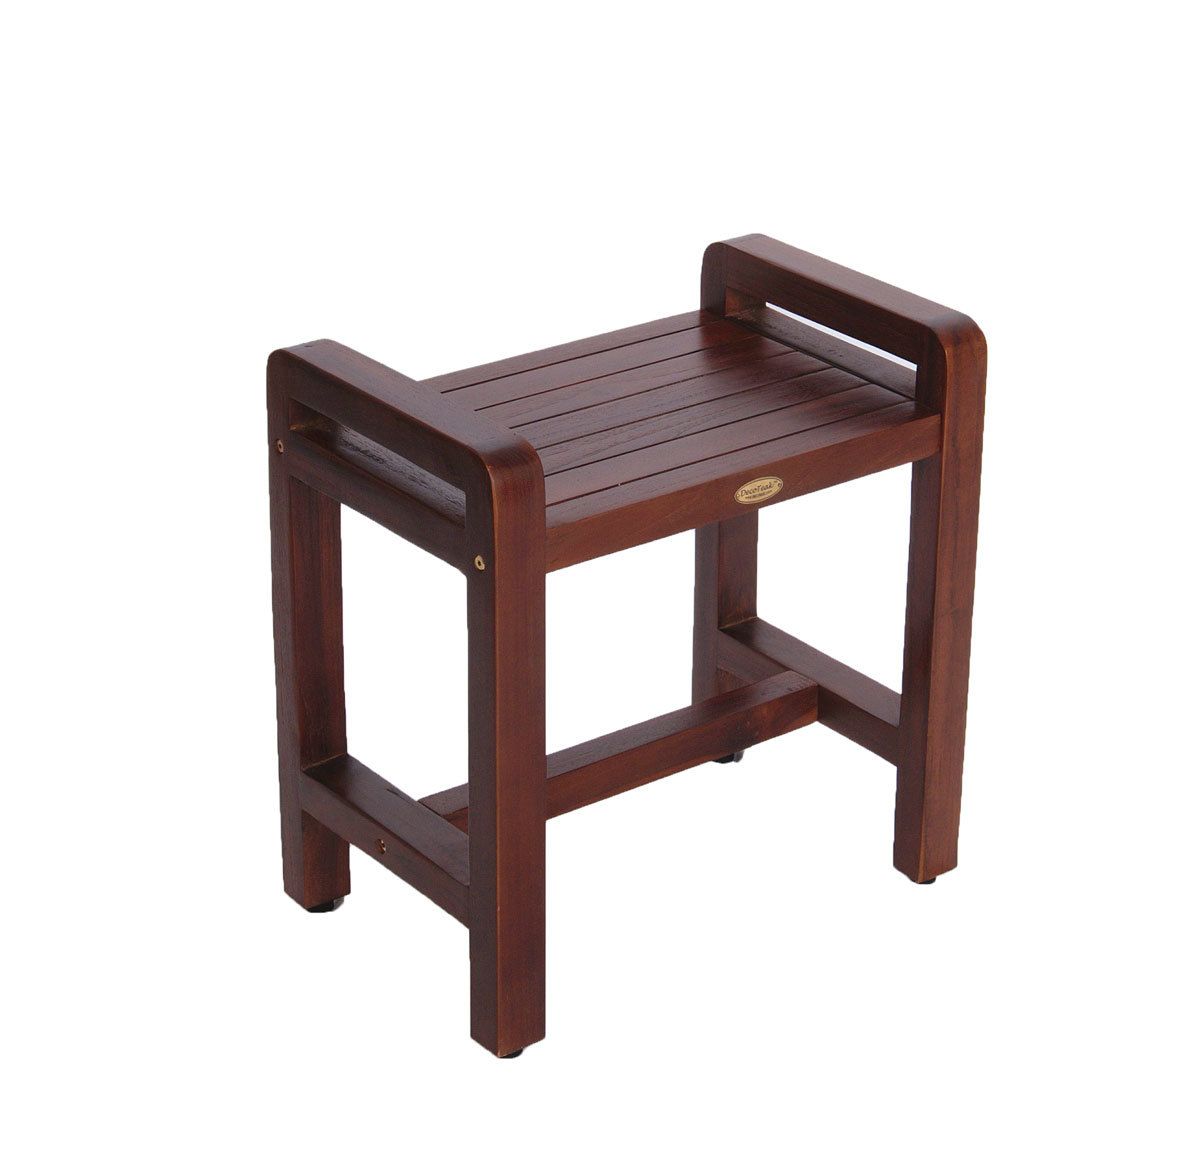 "Decoteak DT107 Classic 20"" Ergonomic Teak Shower Stool with Liftaid Arms"